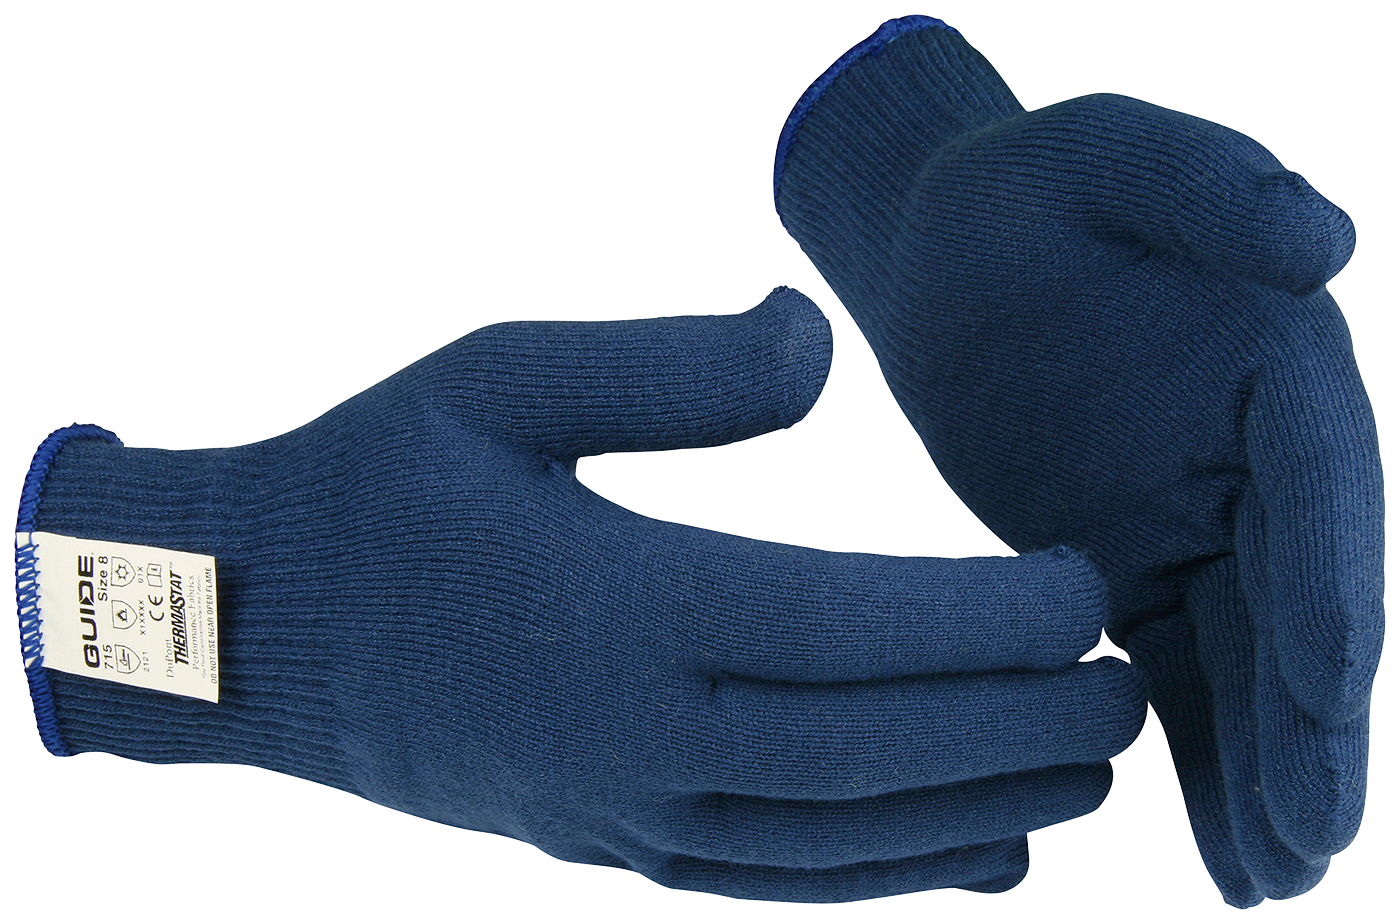 Thin Working Glove GUIDE 715